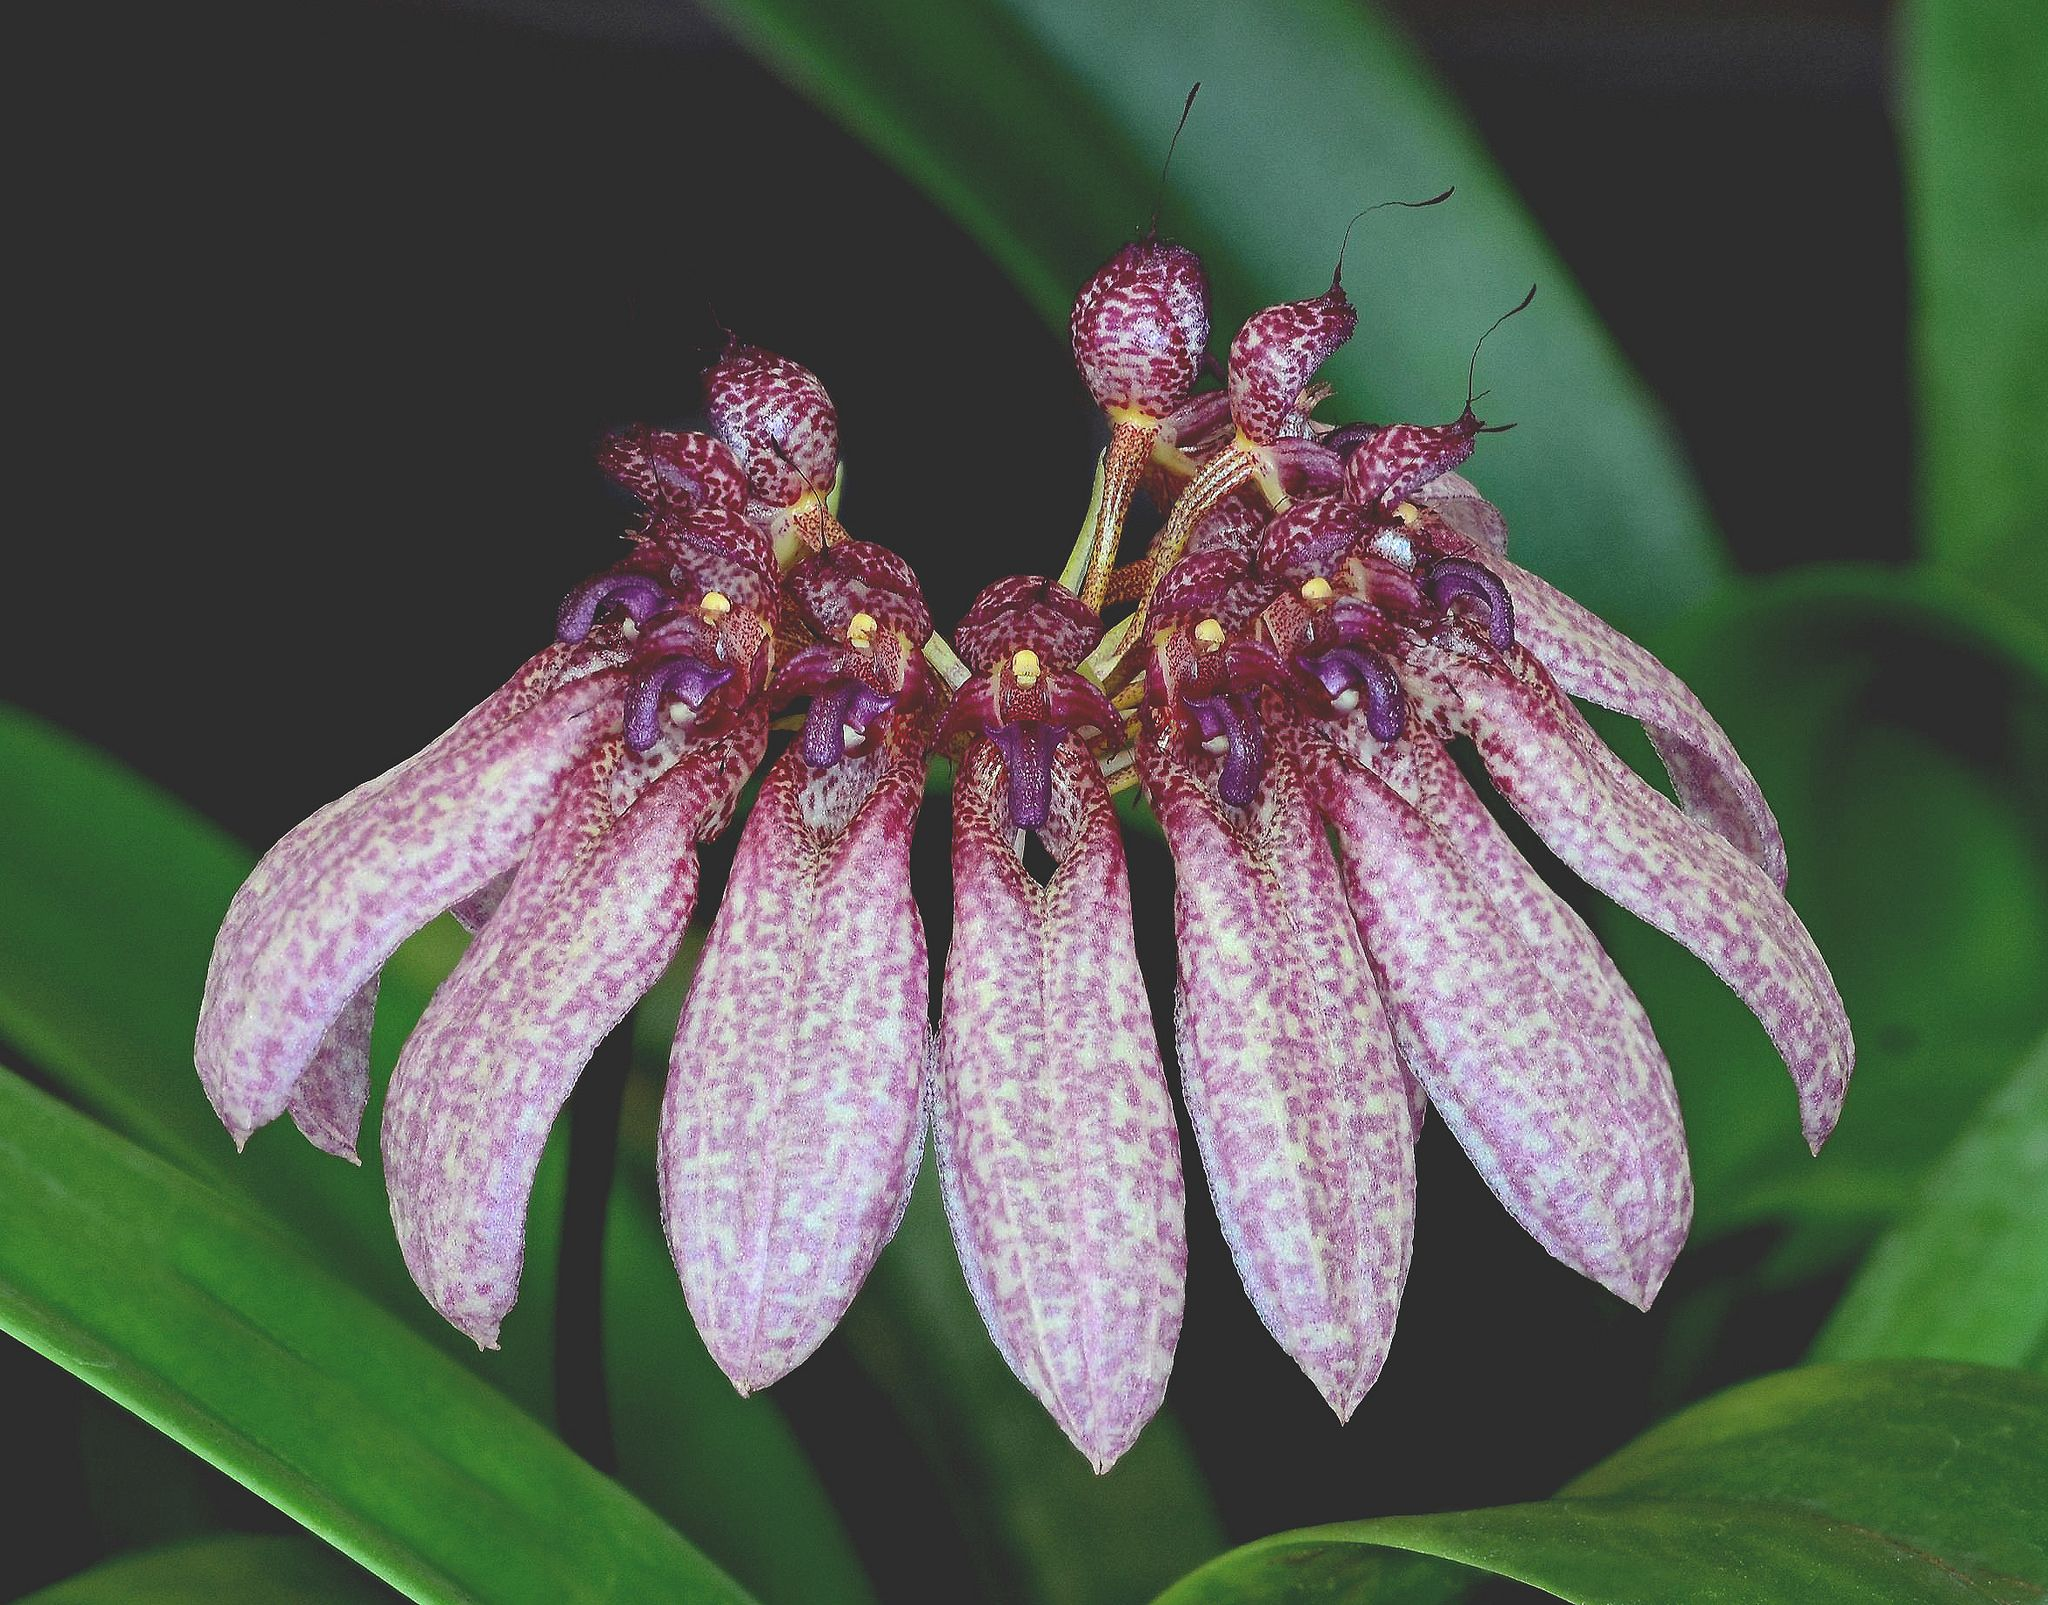 Bulbophyllum eberhardtii. Types of orchids, Orchids